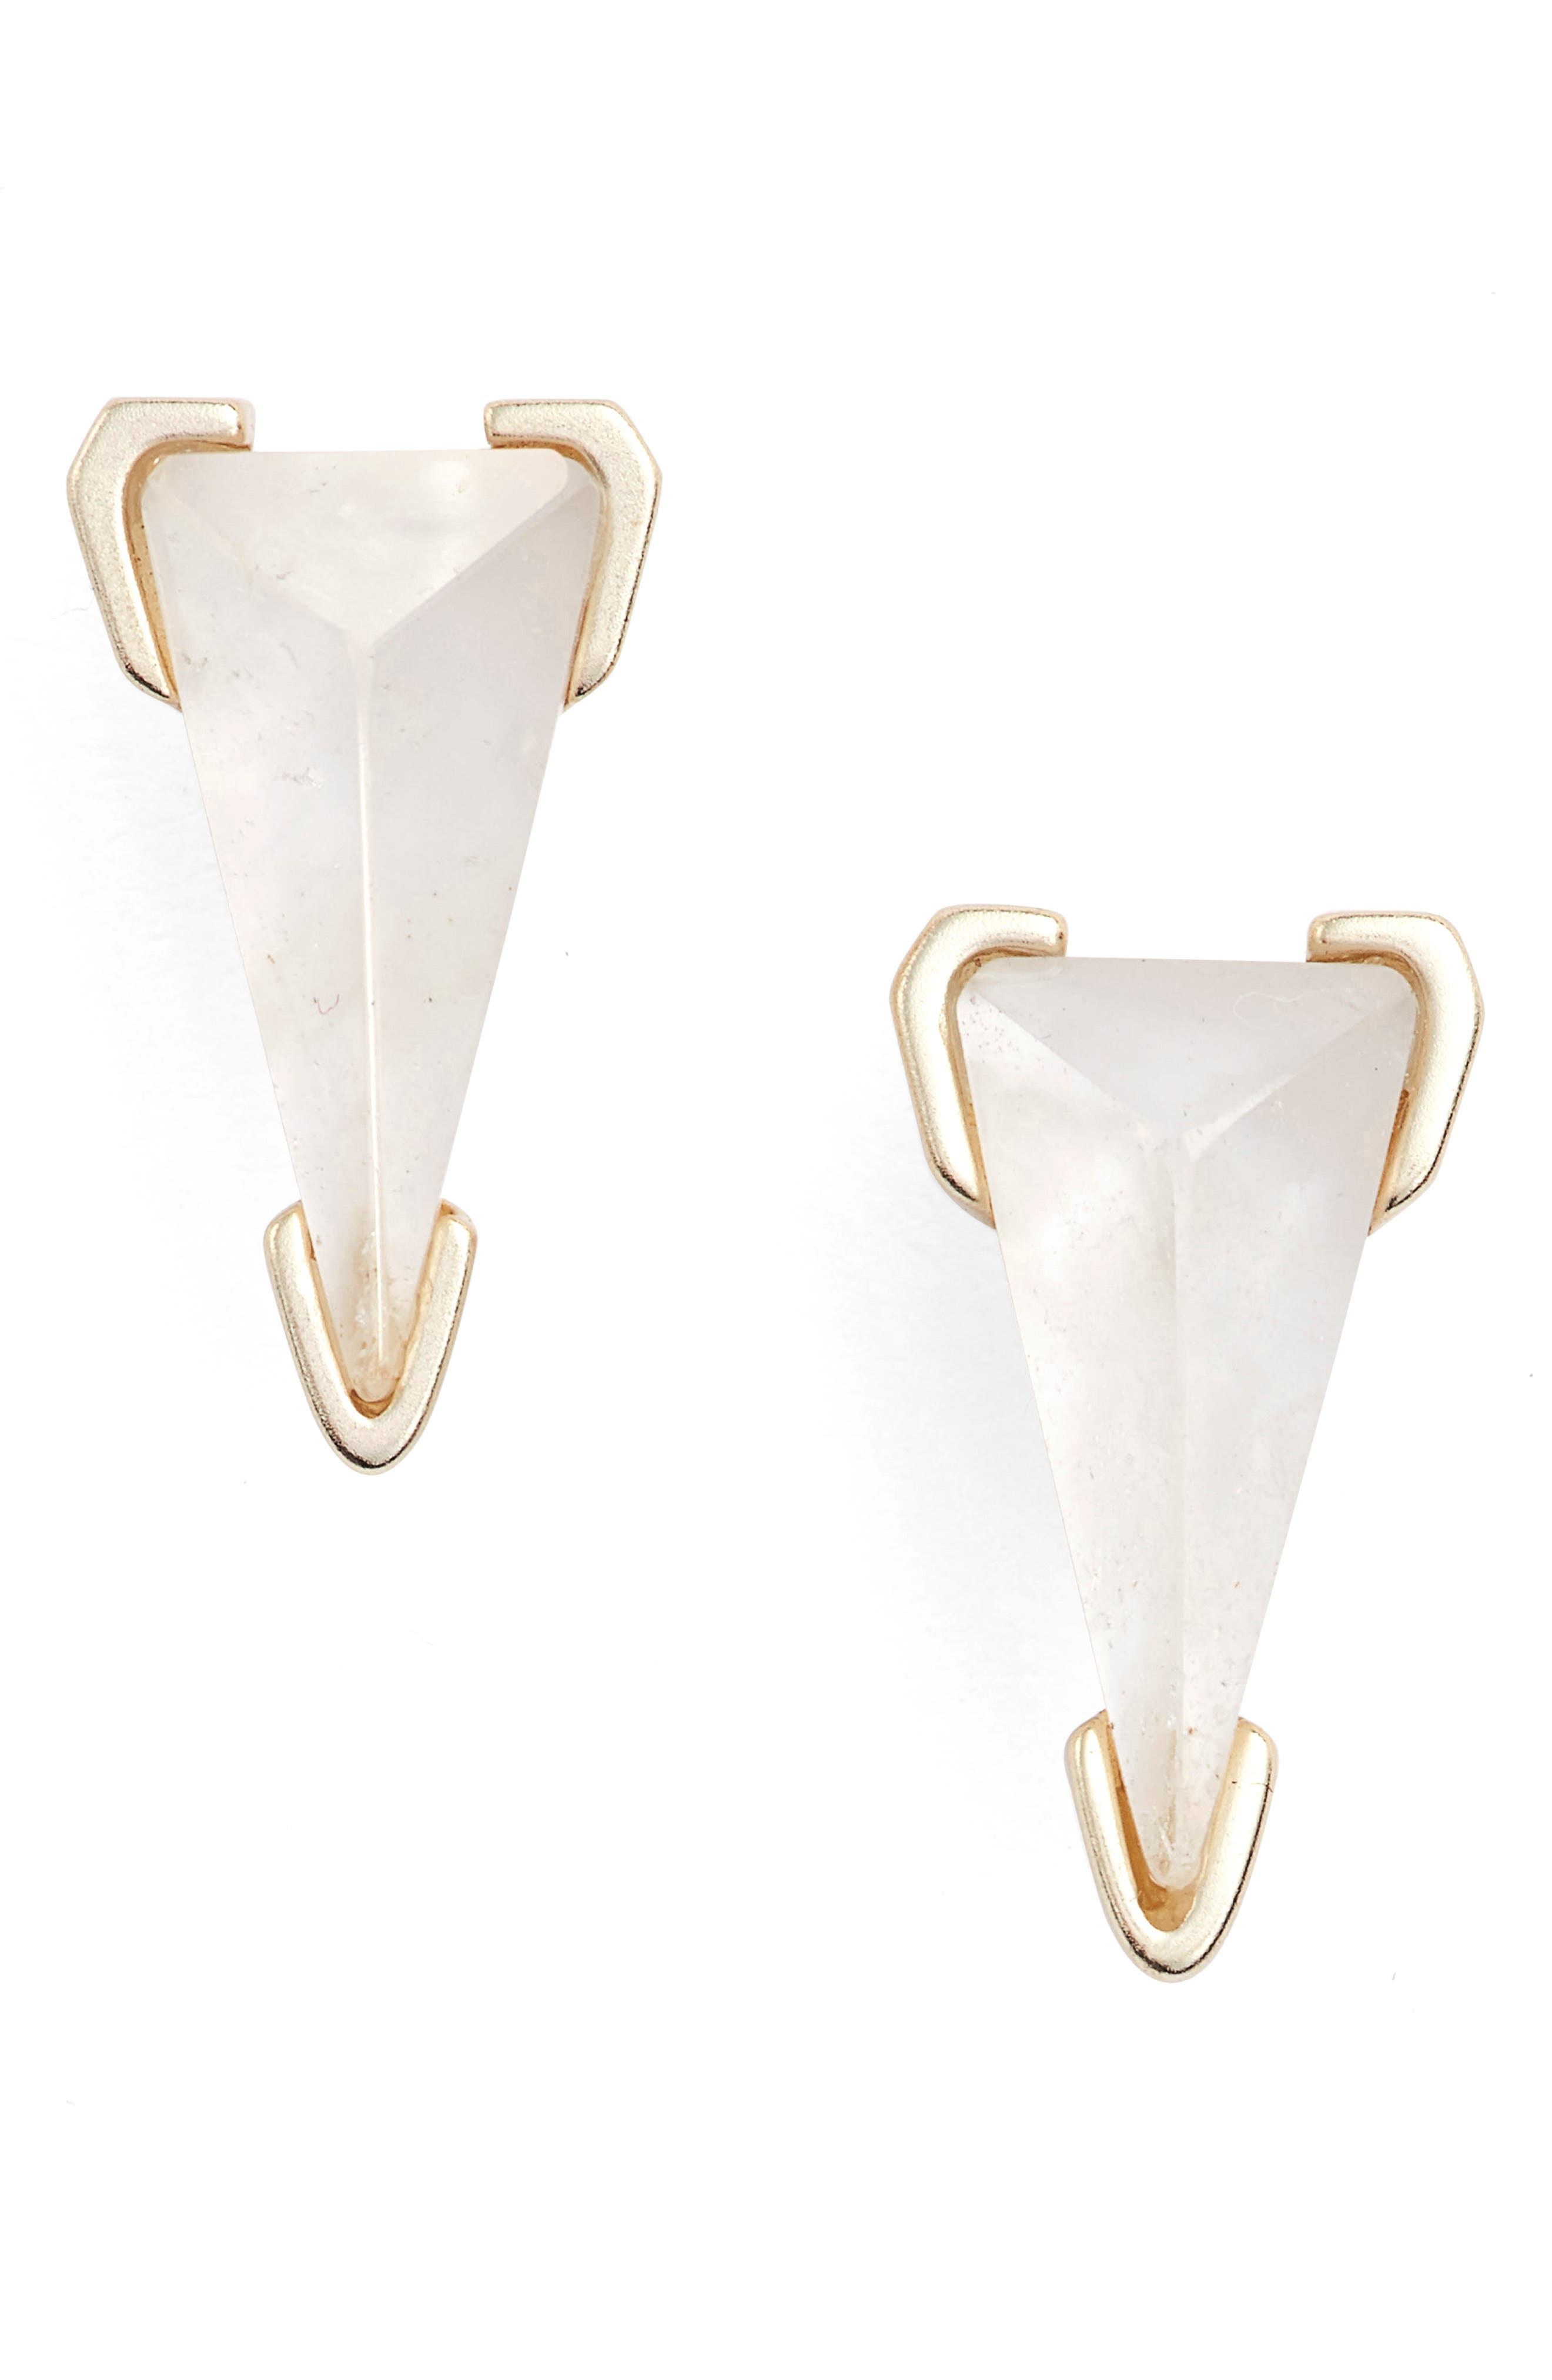 KENDRA SCOTT Honor Drop Earrings